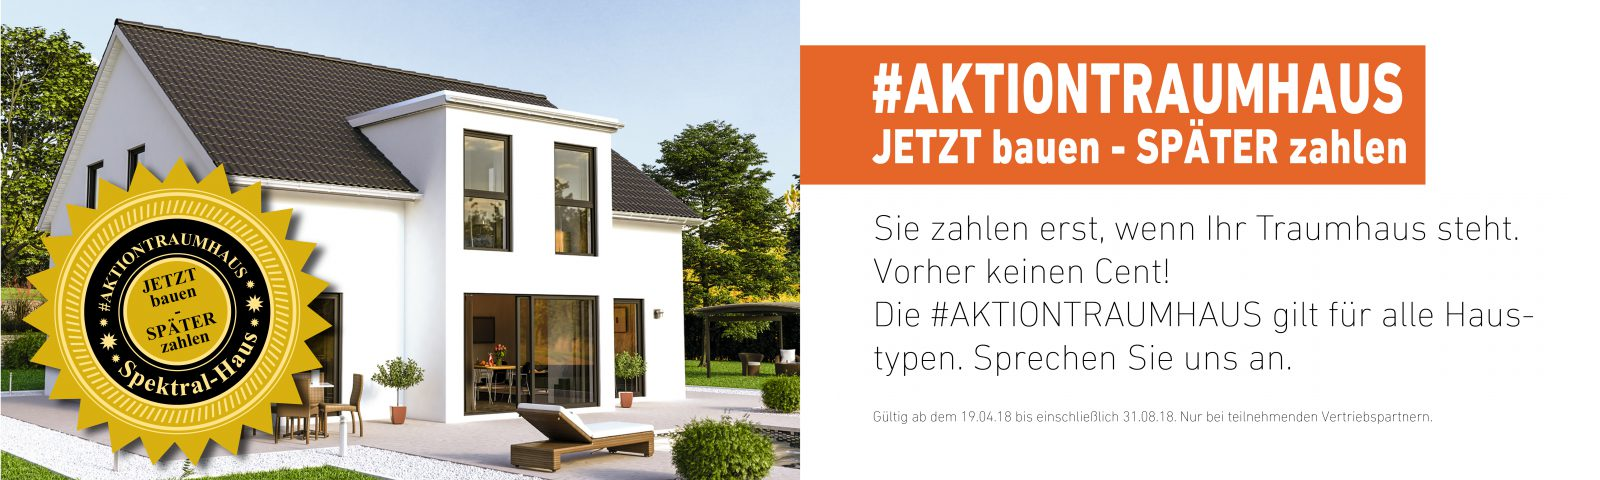 #AKTIONTRAUMHAUS